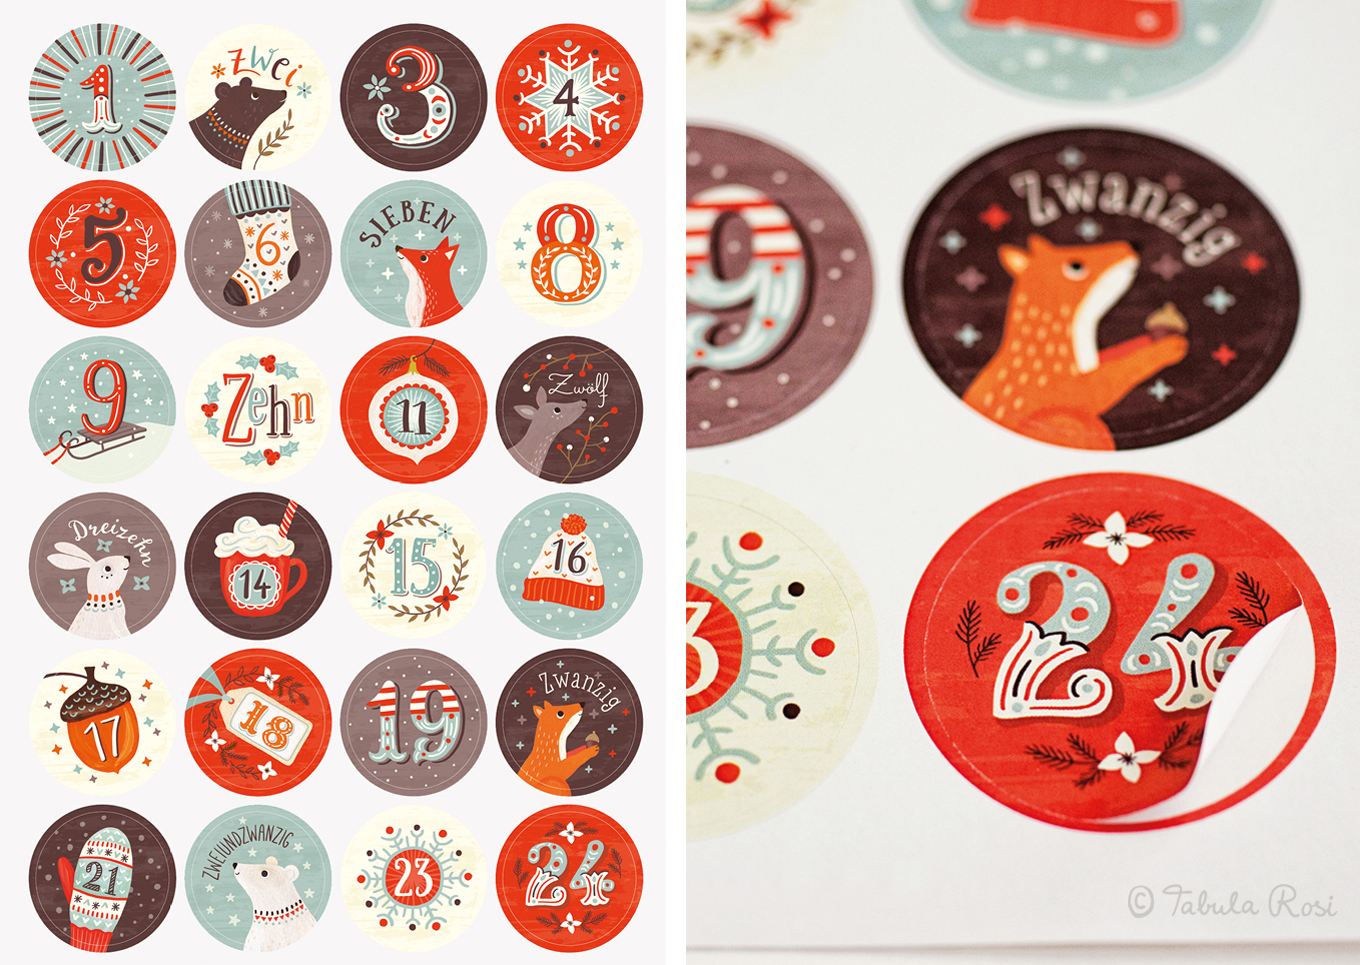 Adventskalender-Sticker